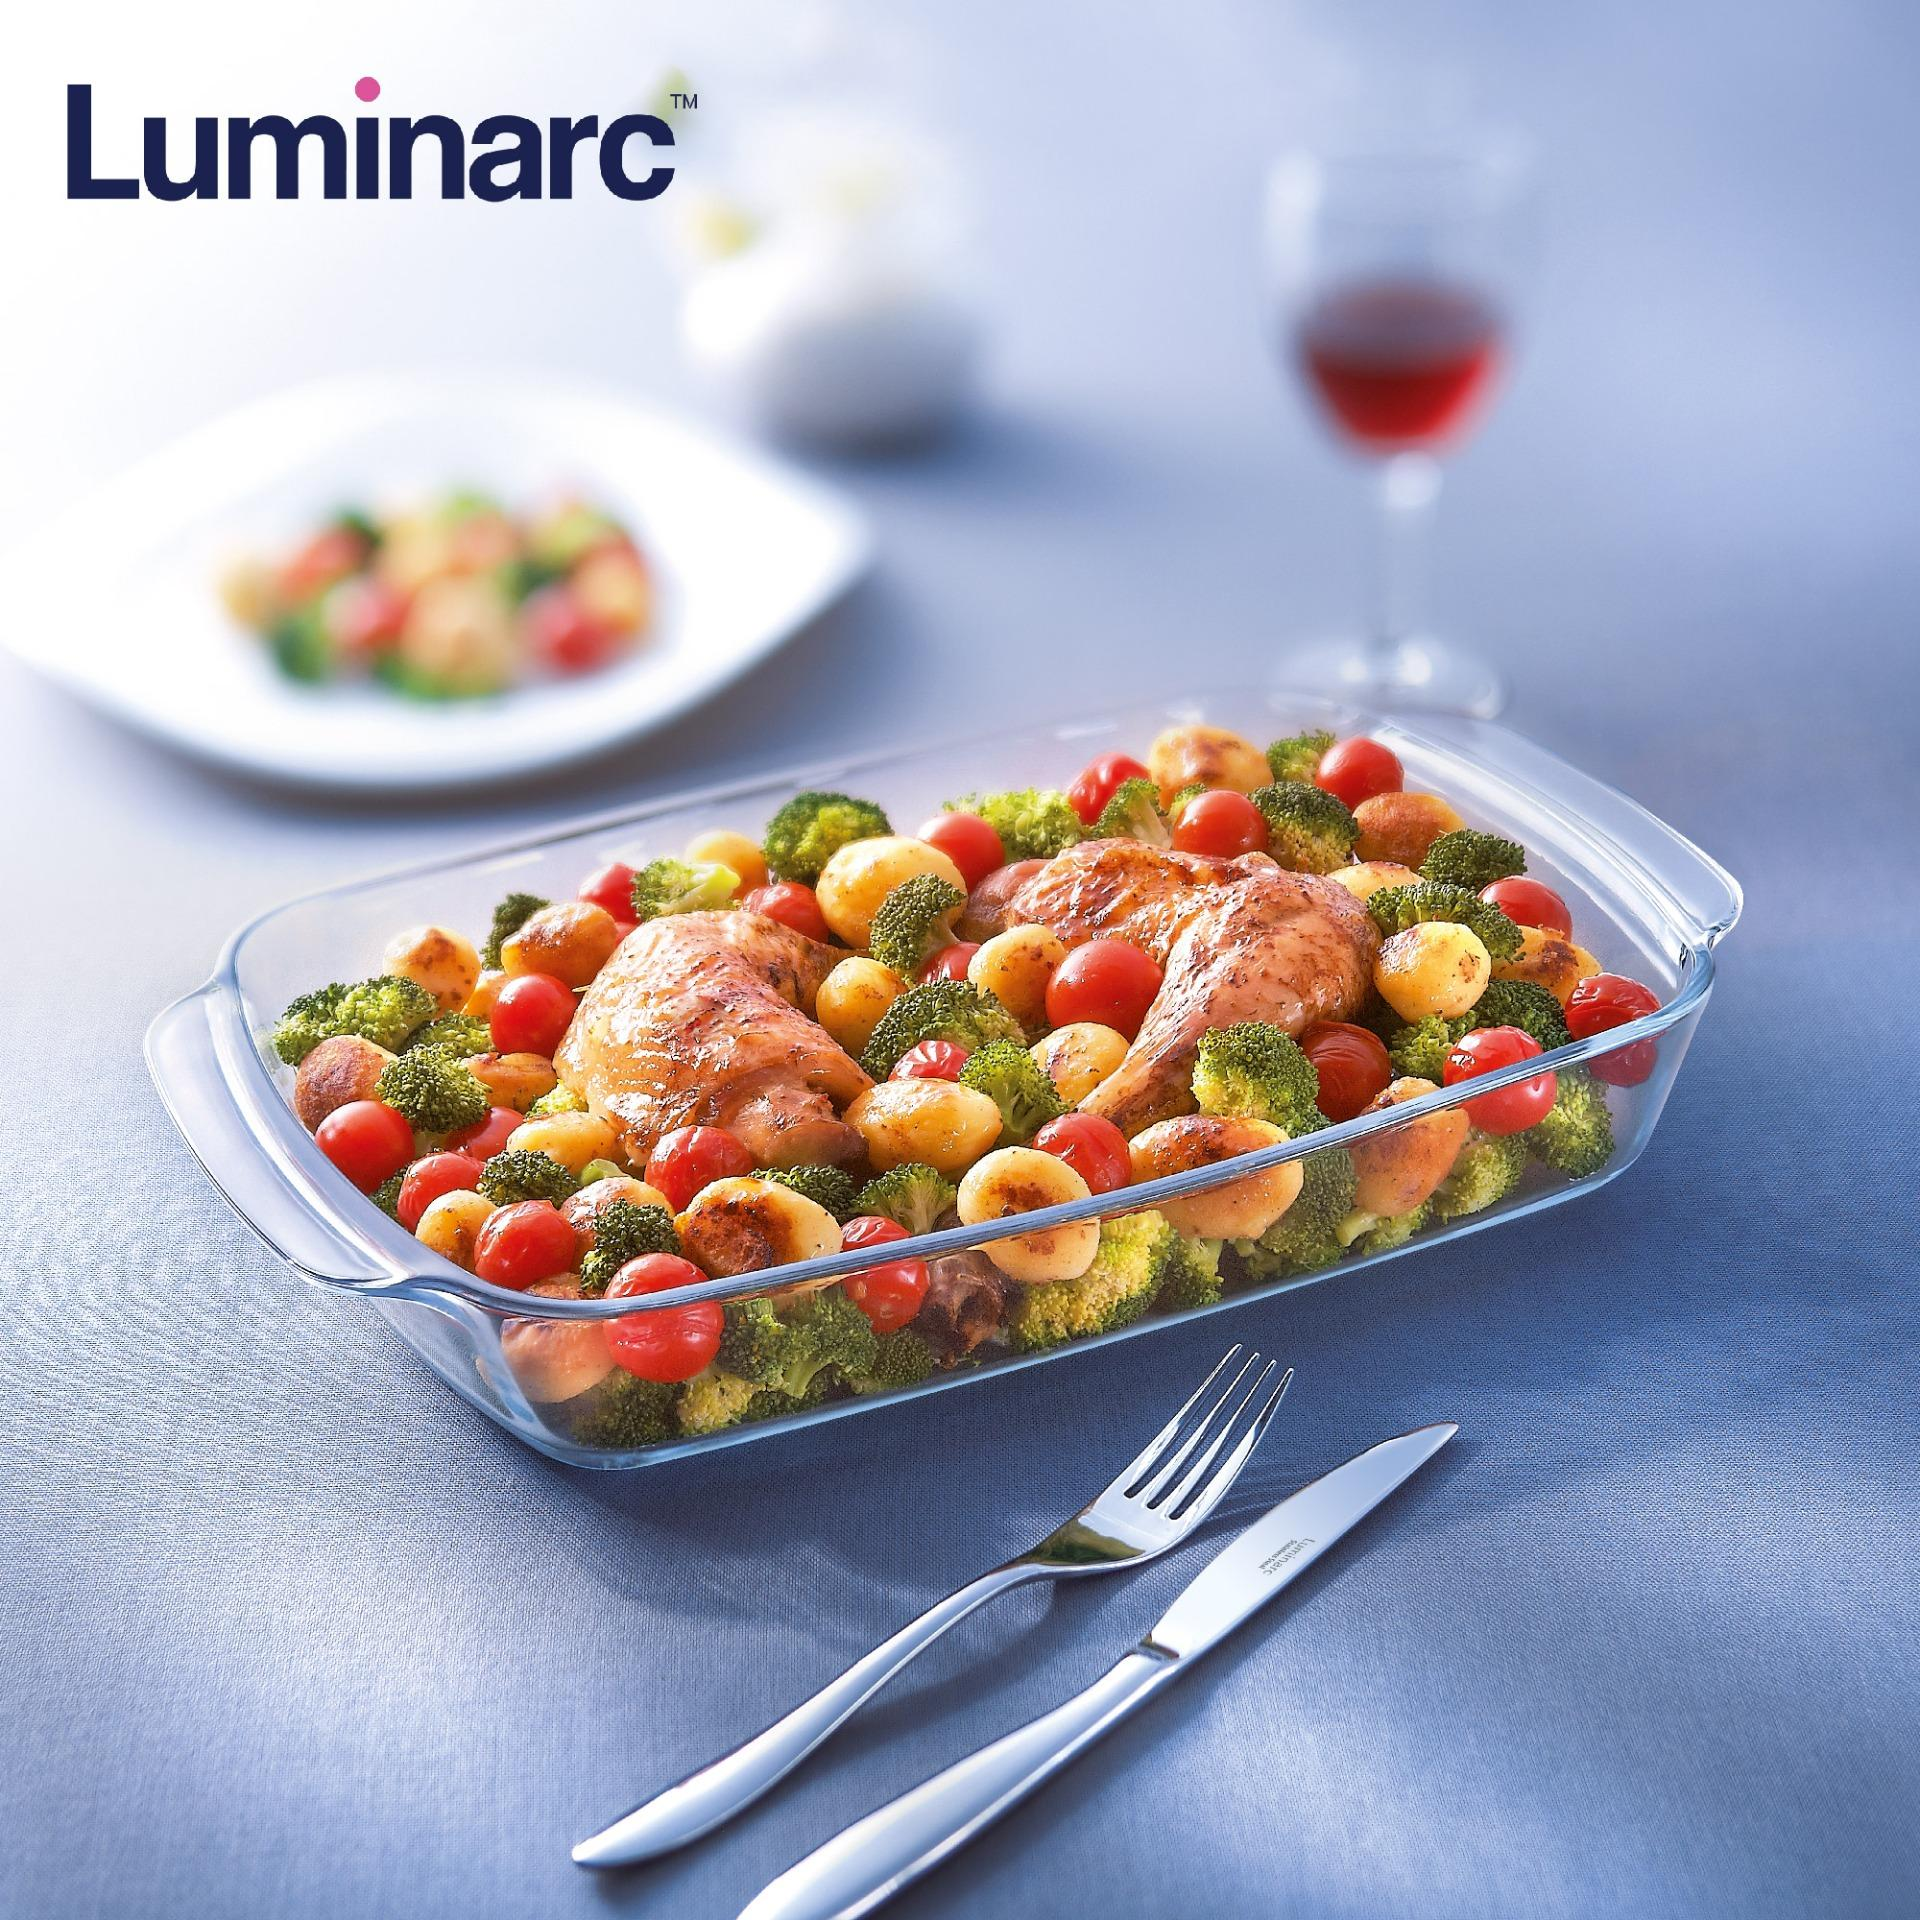 Luminarc Sabot Sodo Rectangular Microwaveable And Diswasher Safe Thermal Shock Resistant Bakeware Glass Serving Dish 3.3l By Luminarc Philippines.